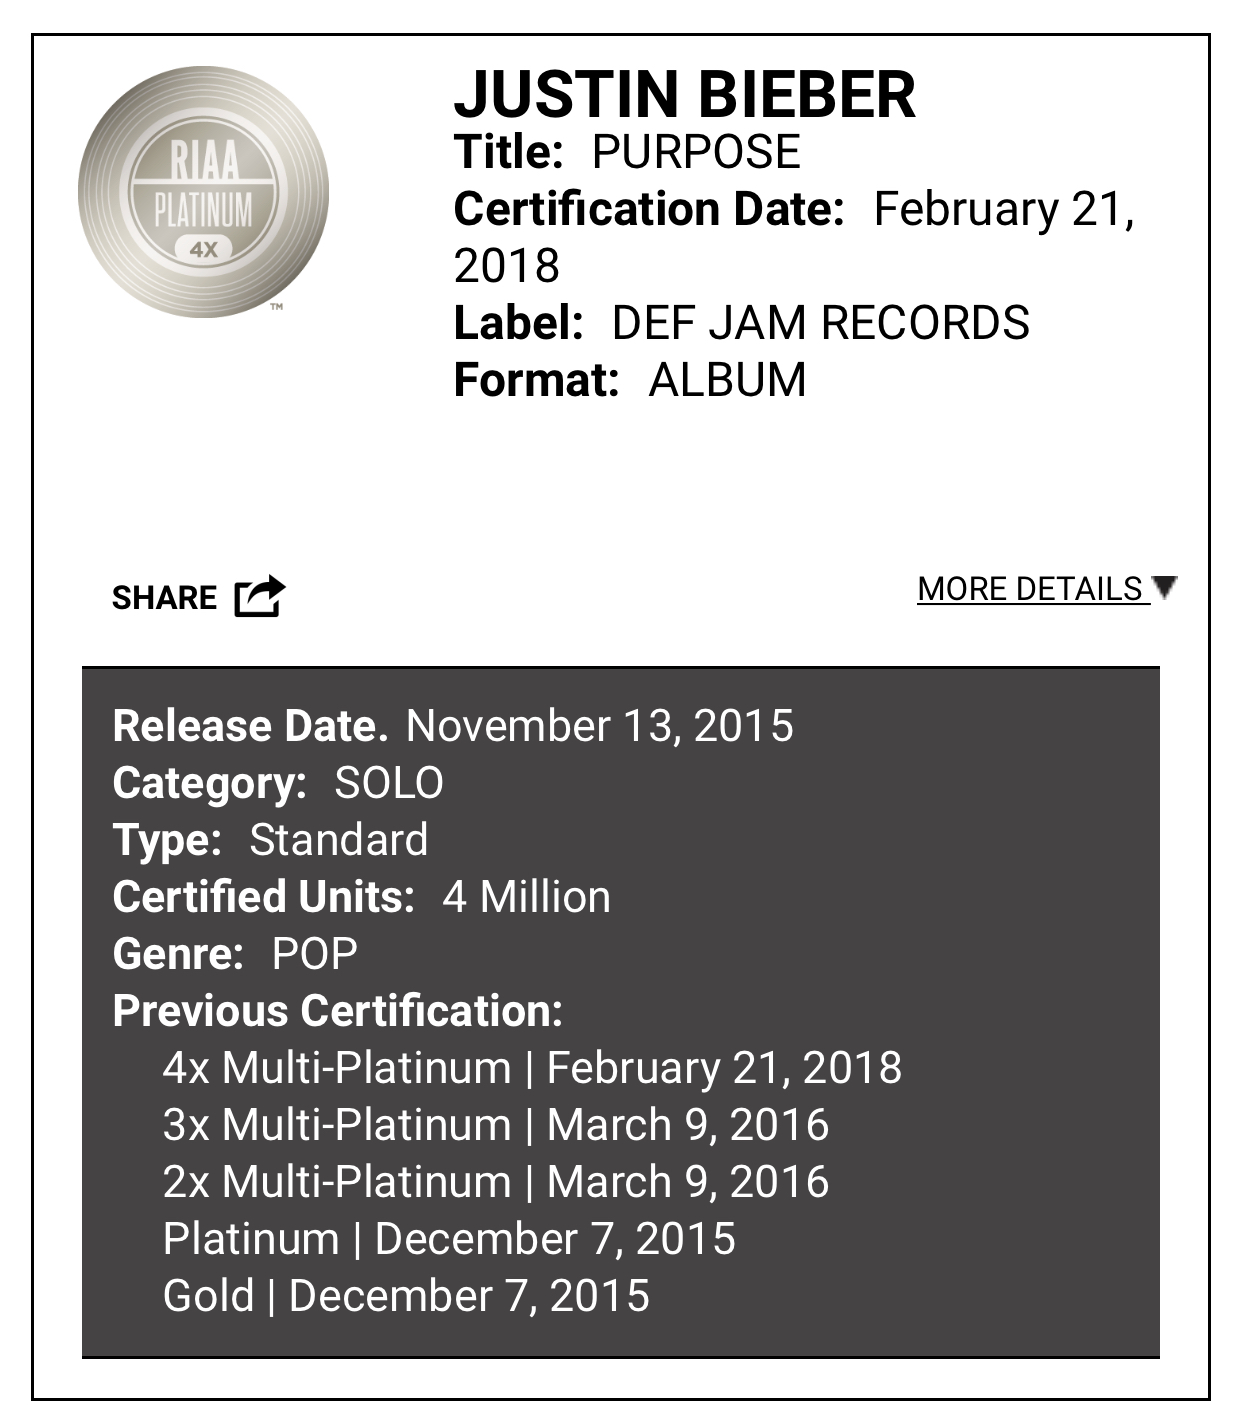 Purpose album Justin Bieber 4 x platinum certification confirmation.jpg